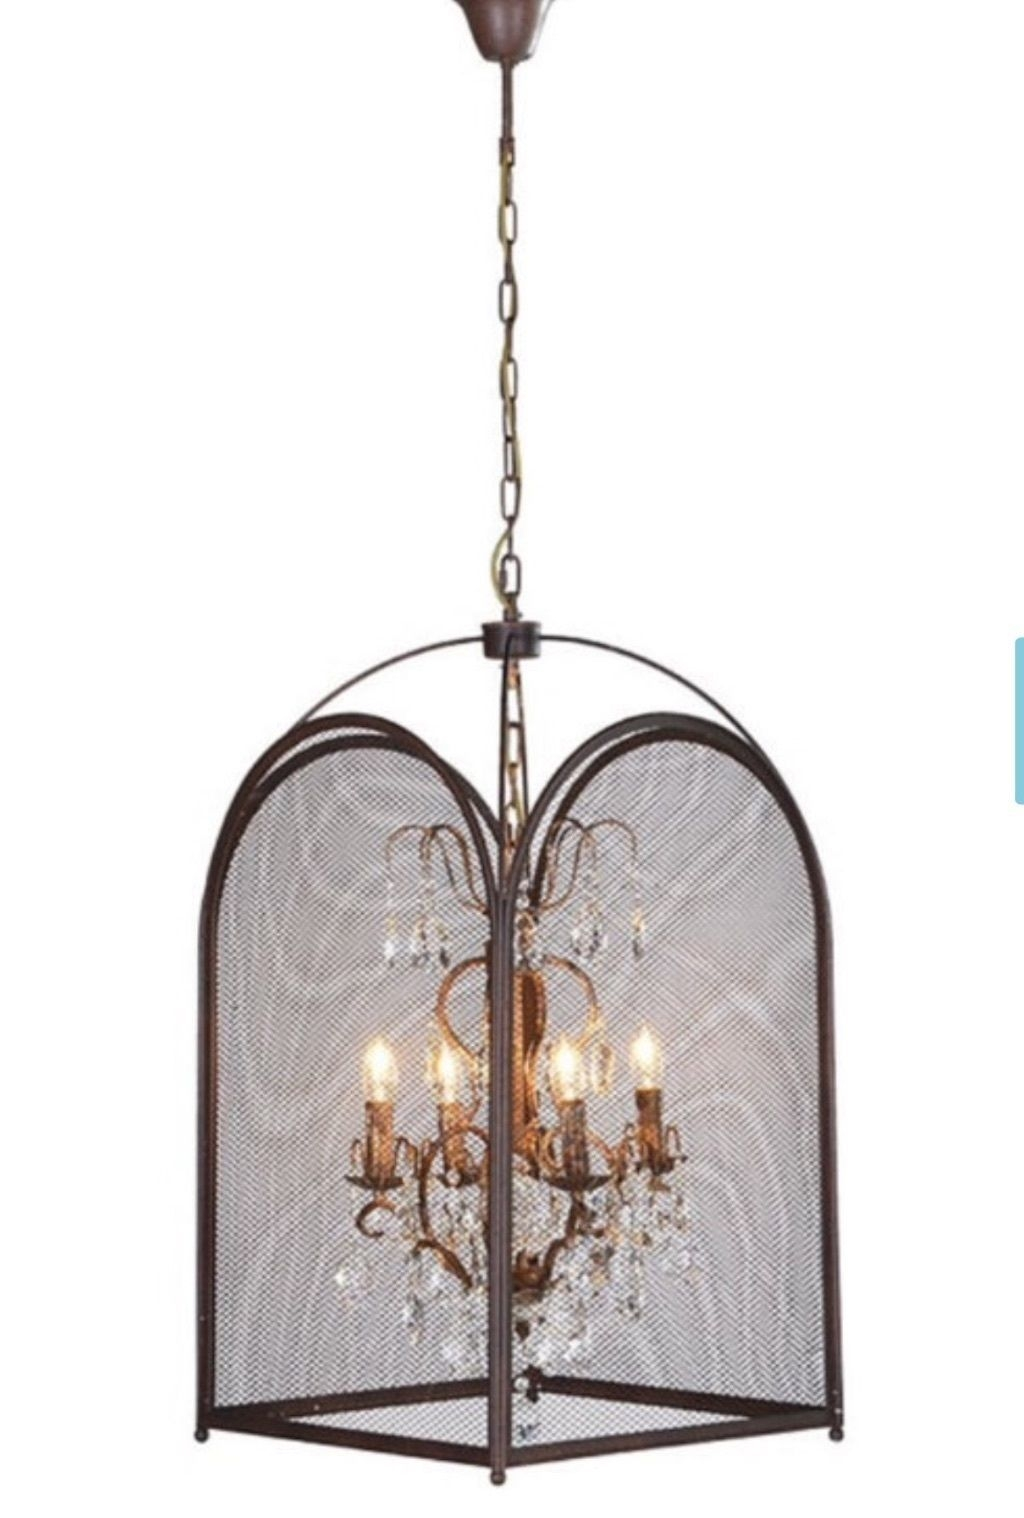 Large Statement Birdcage Vintage Industrial Shab Chic Caged Pertaining To Caged Chandelier (Image 9 of 15)